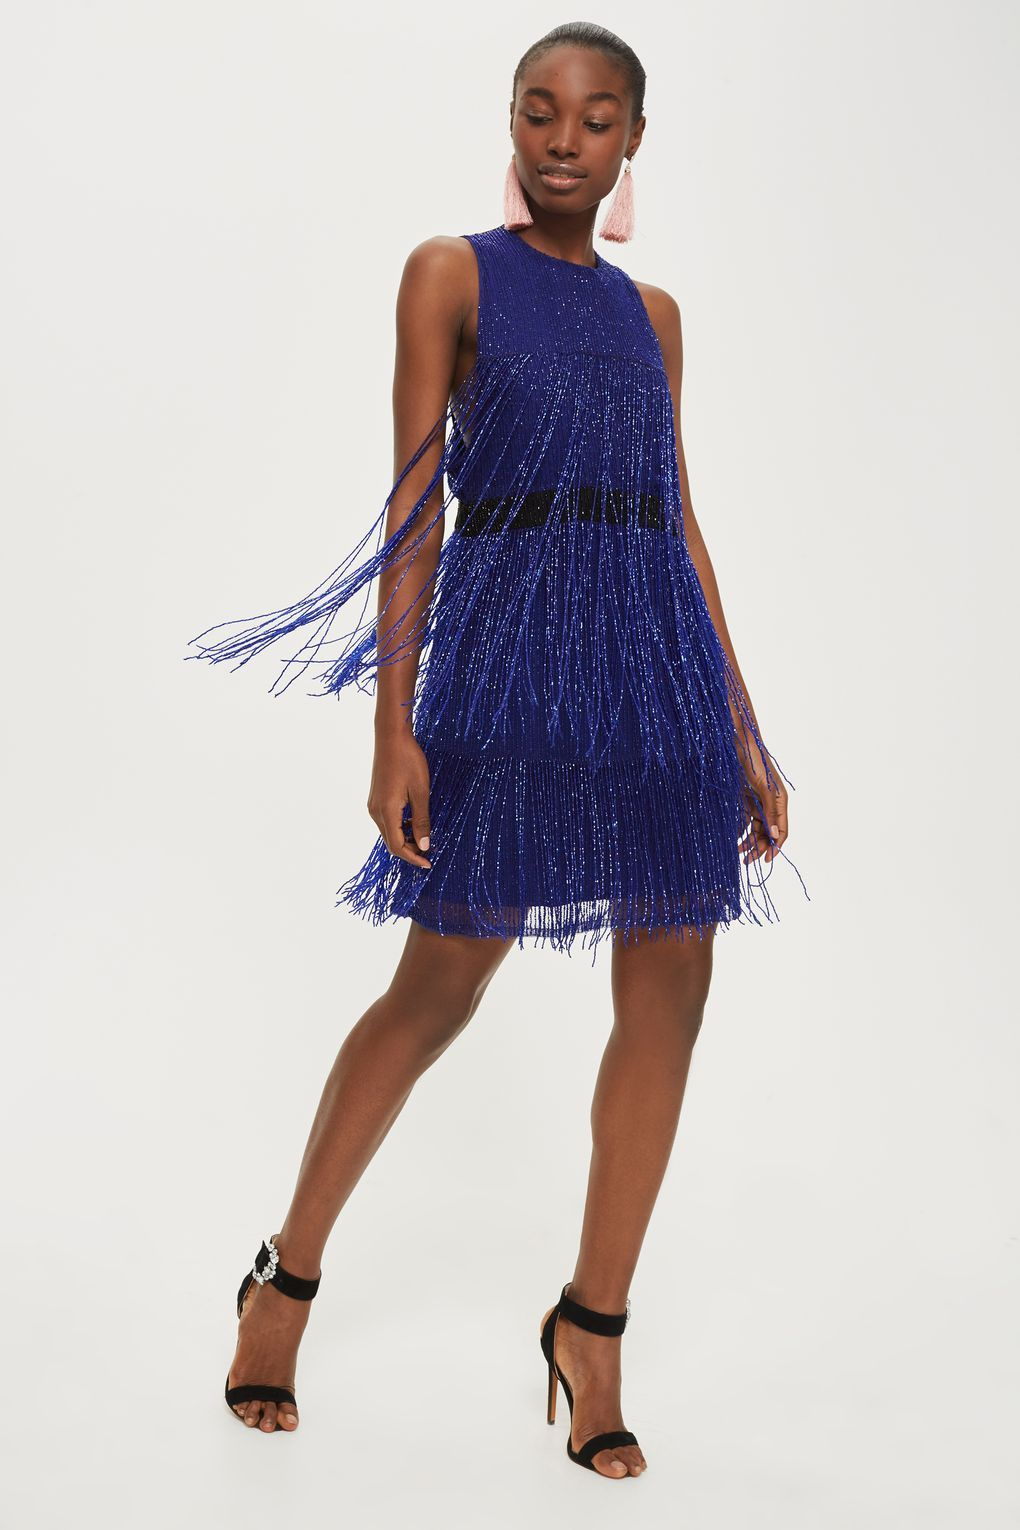 Fringe Beaded Skater Dress Dressy Outfits Jumpsuit For Wedding Guest Wedding Guest Outfit Inspiration [ 1530 x 1020 Pixel ]